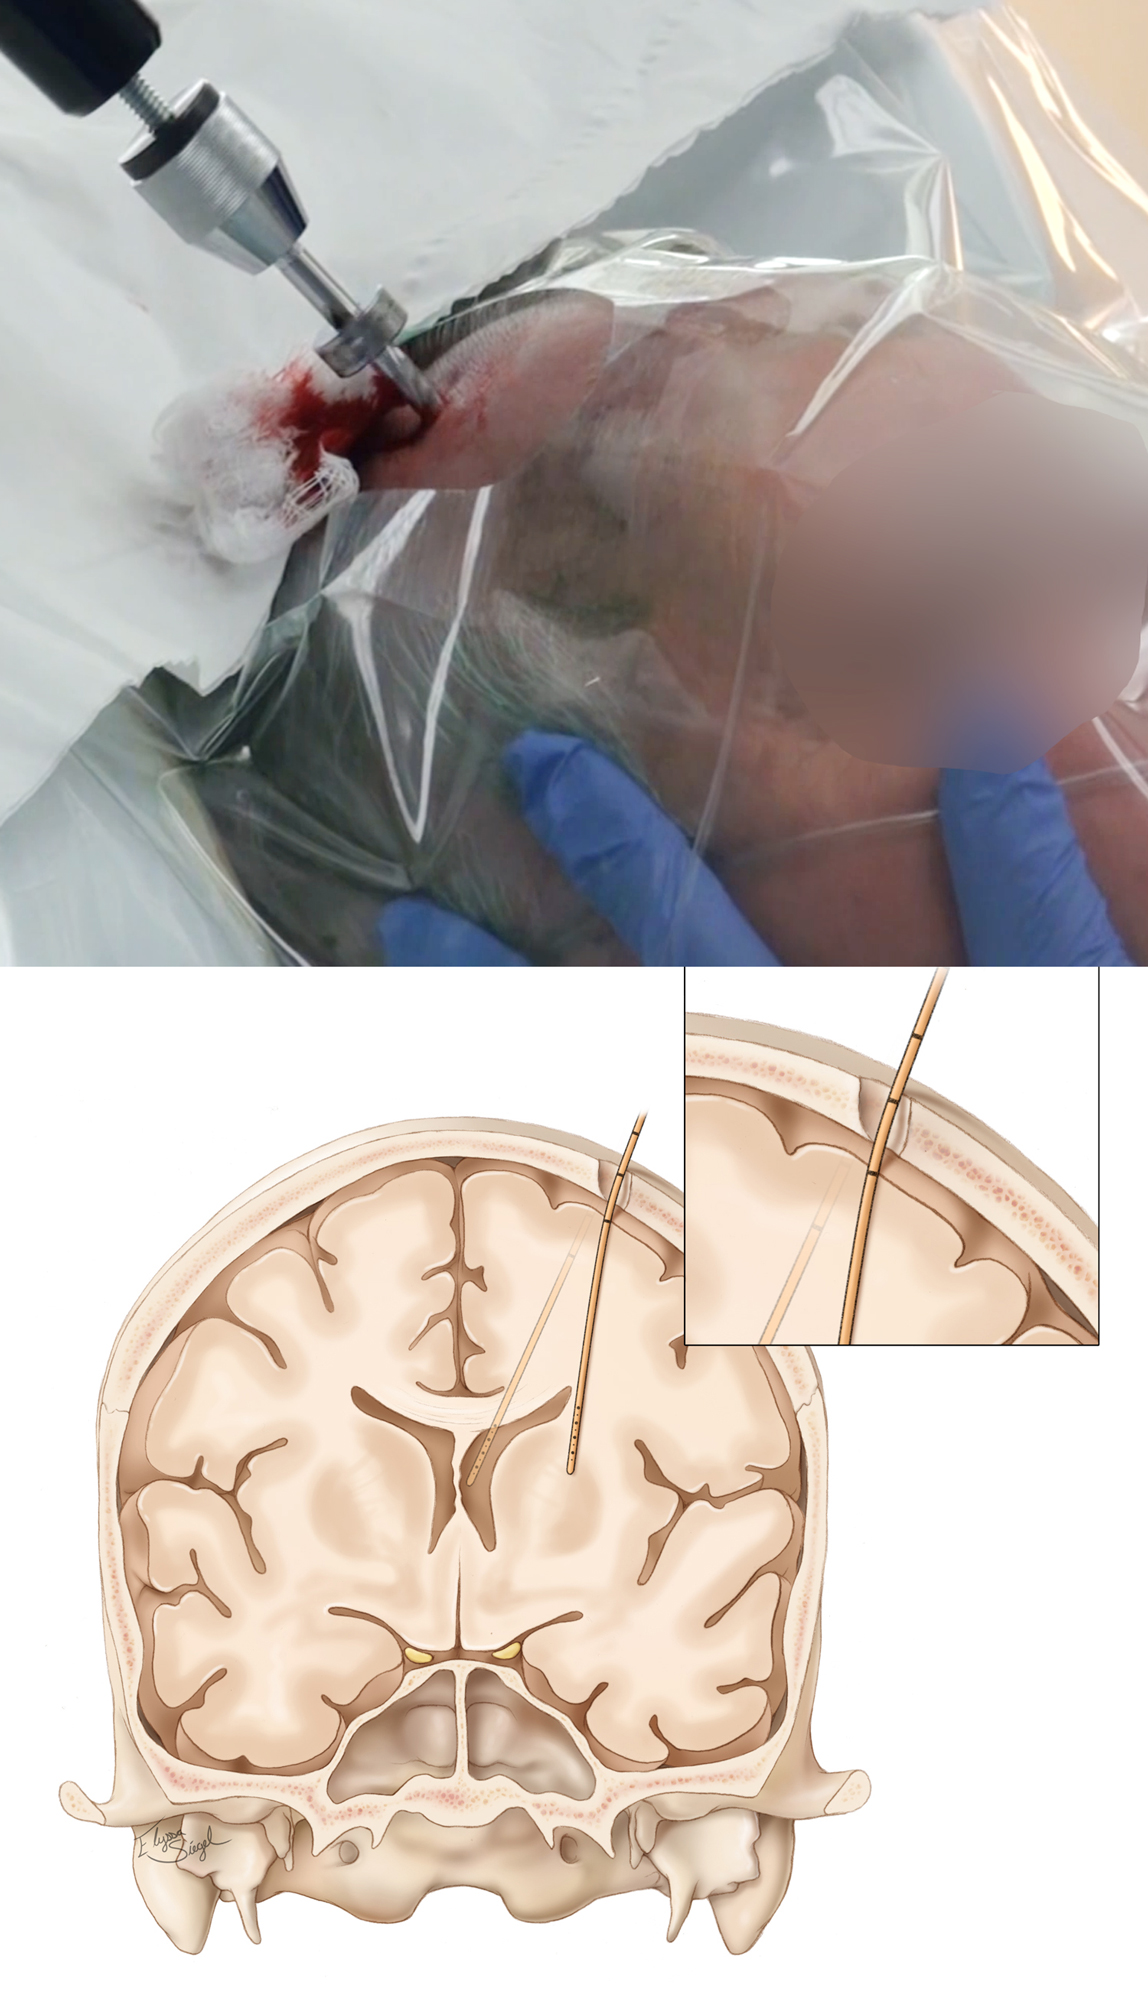 Figure 4: The drill must enter the skull at a perpendicular angle and with the same trajectory as the EVD catheter (top image). This maneuver is essential since the drill's small diameter bit, together with the thickness of the skull, will determine the allowable angles or trajectories through which the catheter can enter the brain. Any slight deflection of the catheter because of an inadequate craniostomy leads to serious alterations in the final trajectory of the catheter tip (lower image). Since this deflection occurs after the catheter has entered the brain, the operator will not be cognizant of it.